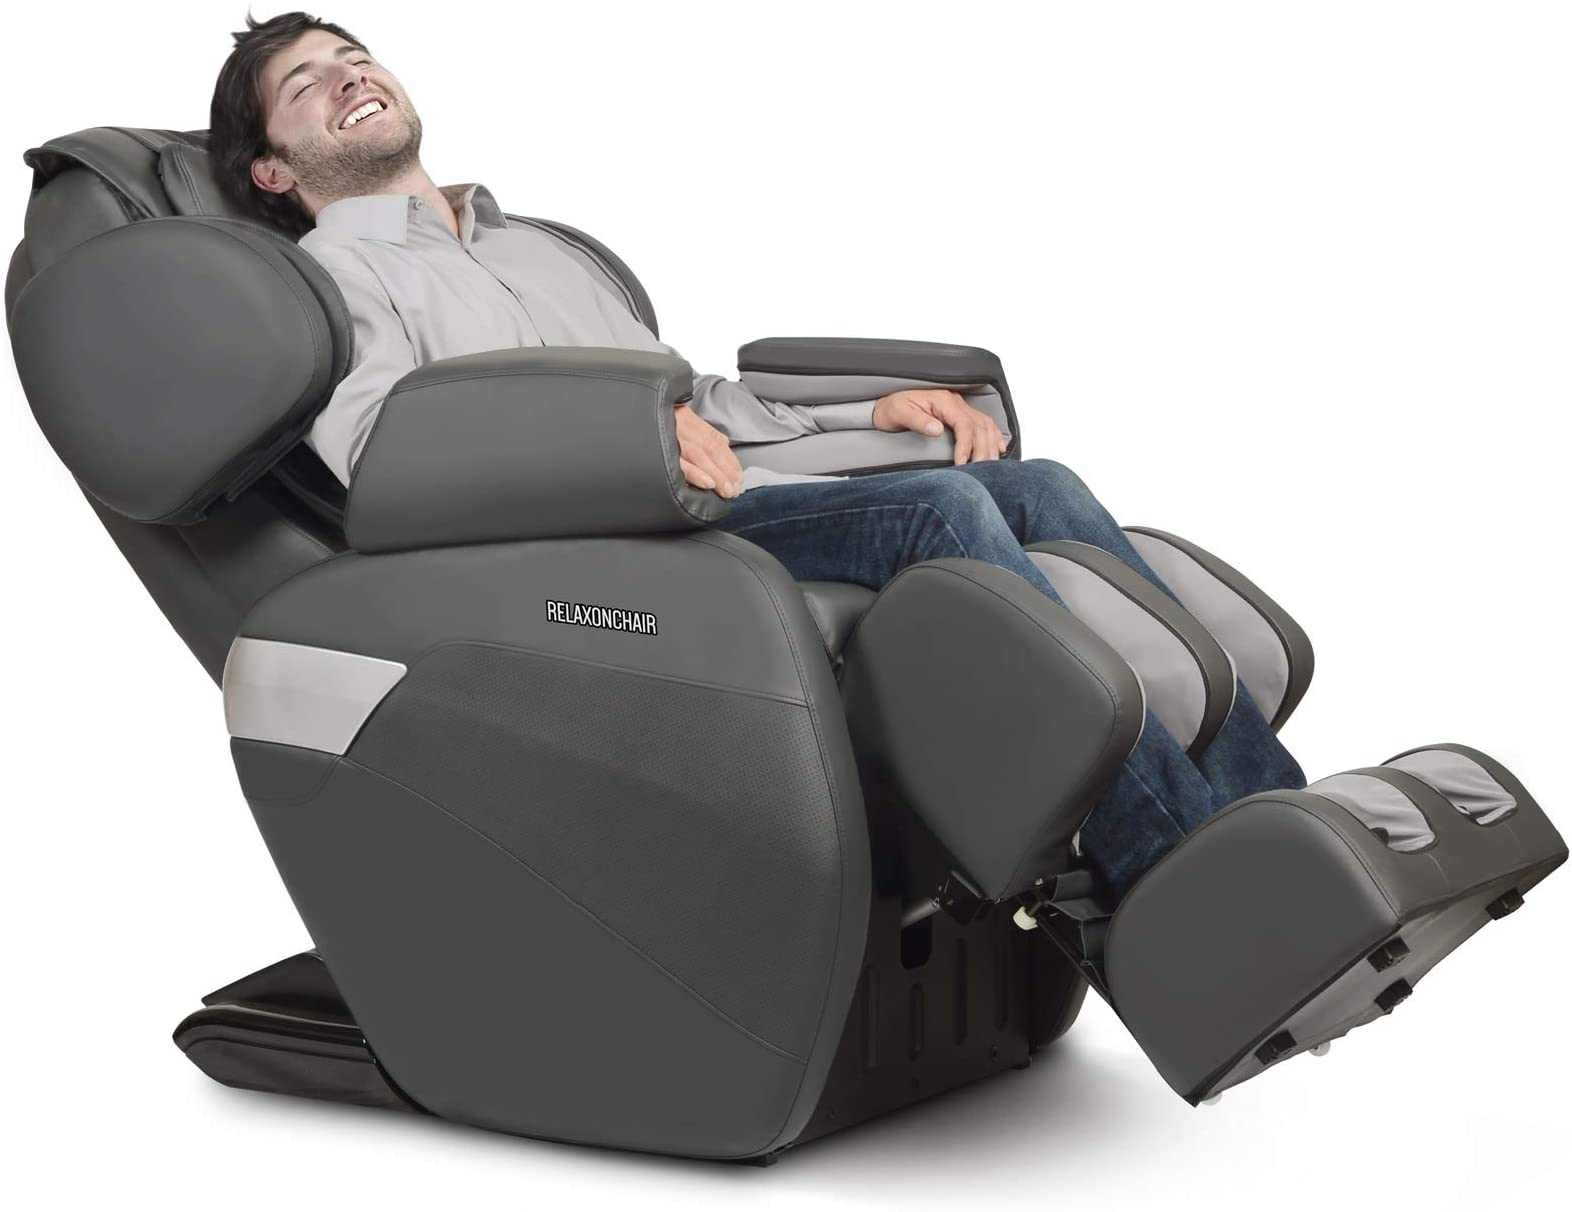 RELAXONCHAIR [MK-II Plus] Full Body Zero Gravity Shiatsu Massage Chair with Built-in Heat and Air Massage System - Charcoal (White Glove Delivery)